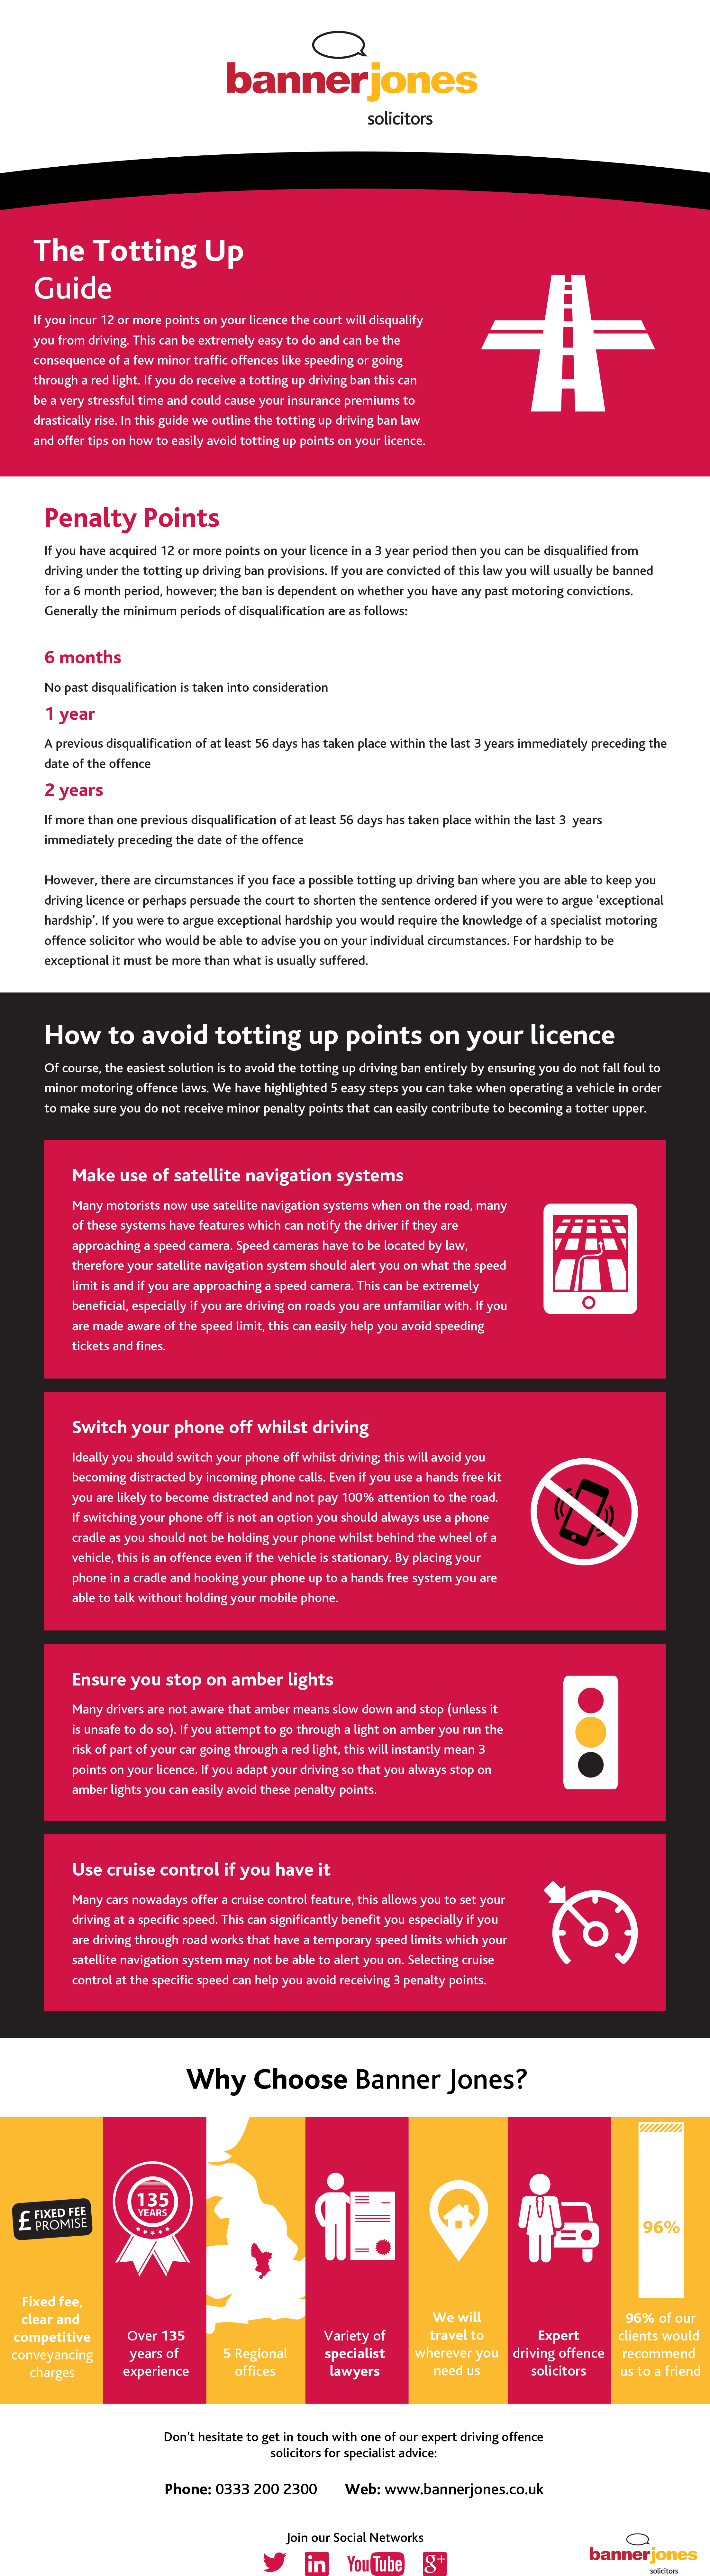 Did you know that using a sat nav can alert you to speed cameras and prevent you from totting up points on your license? Read more tips from our totting up guide!